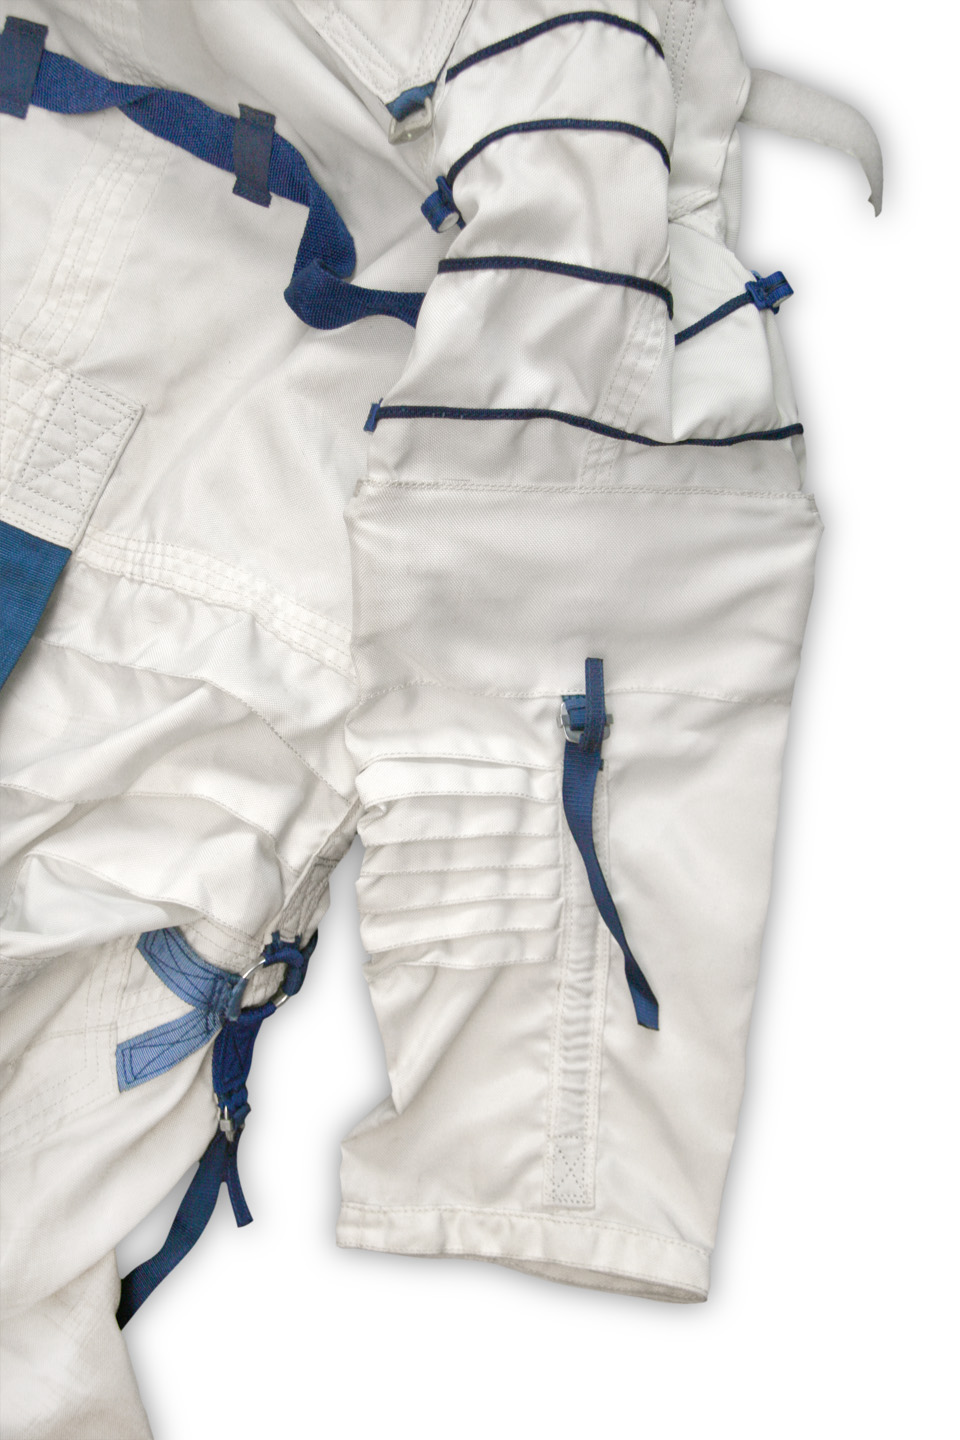 detailed space suit - photo #24